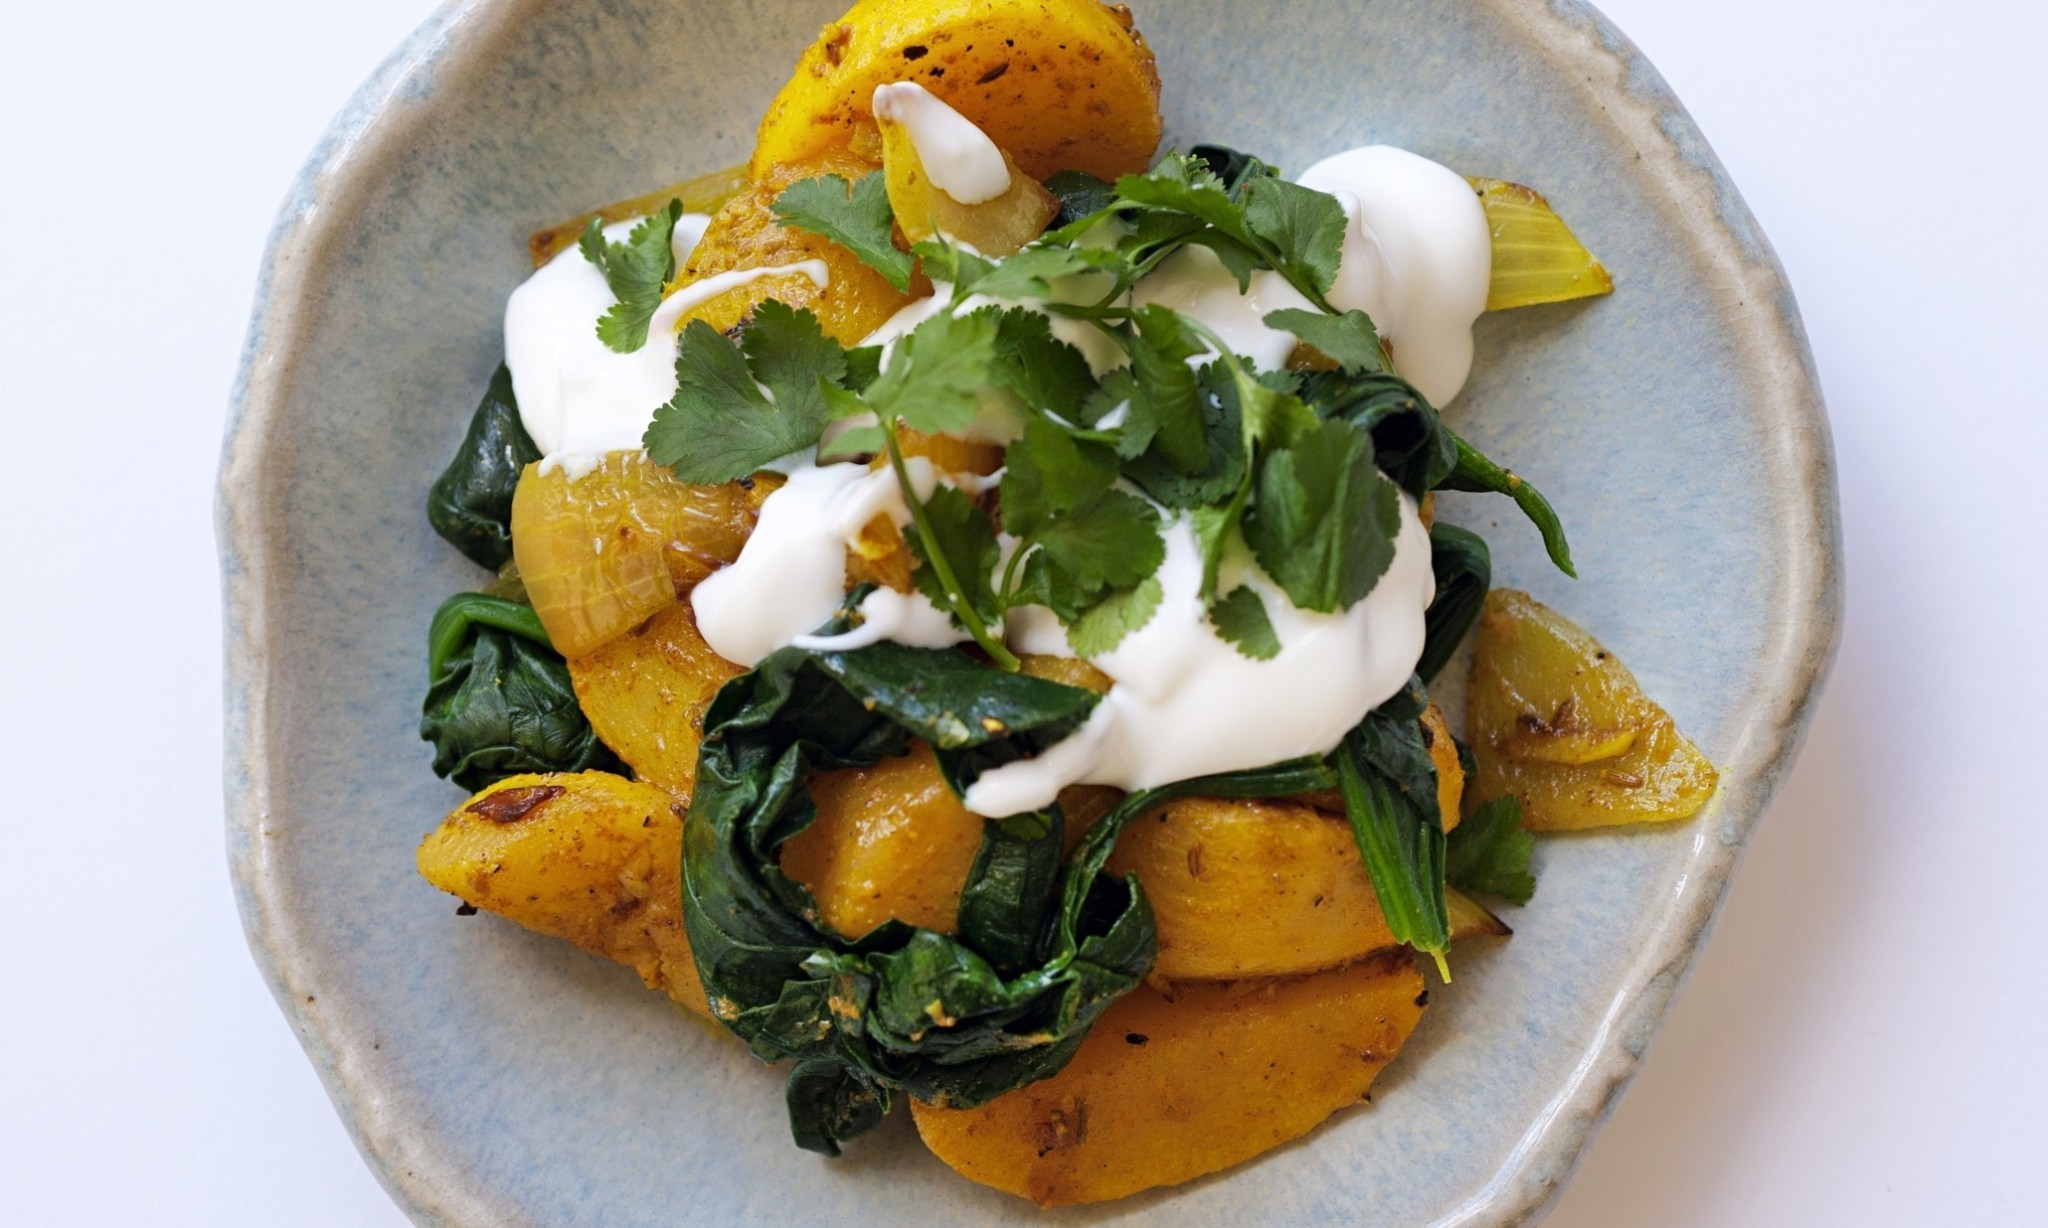 Nigel Slater's spiced turnips with spinach